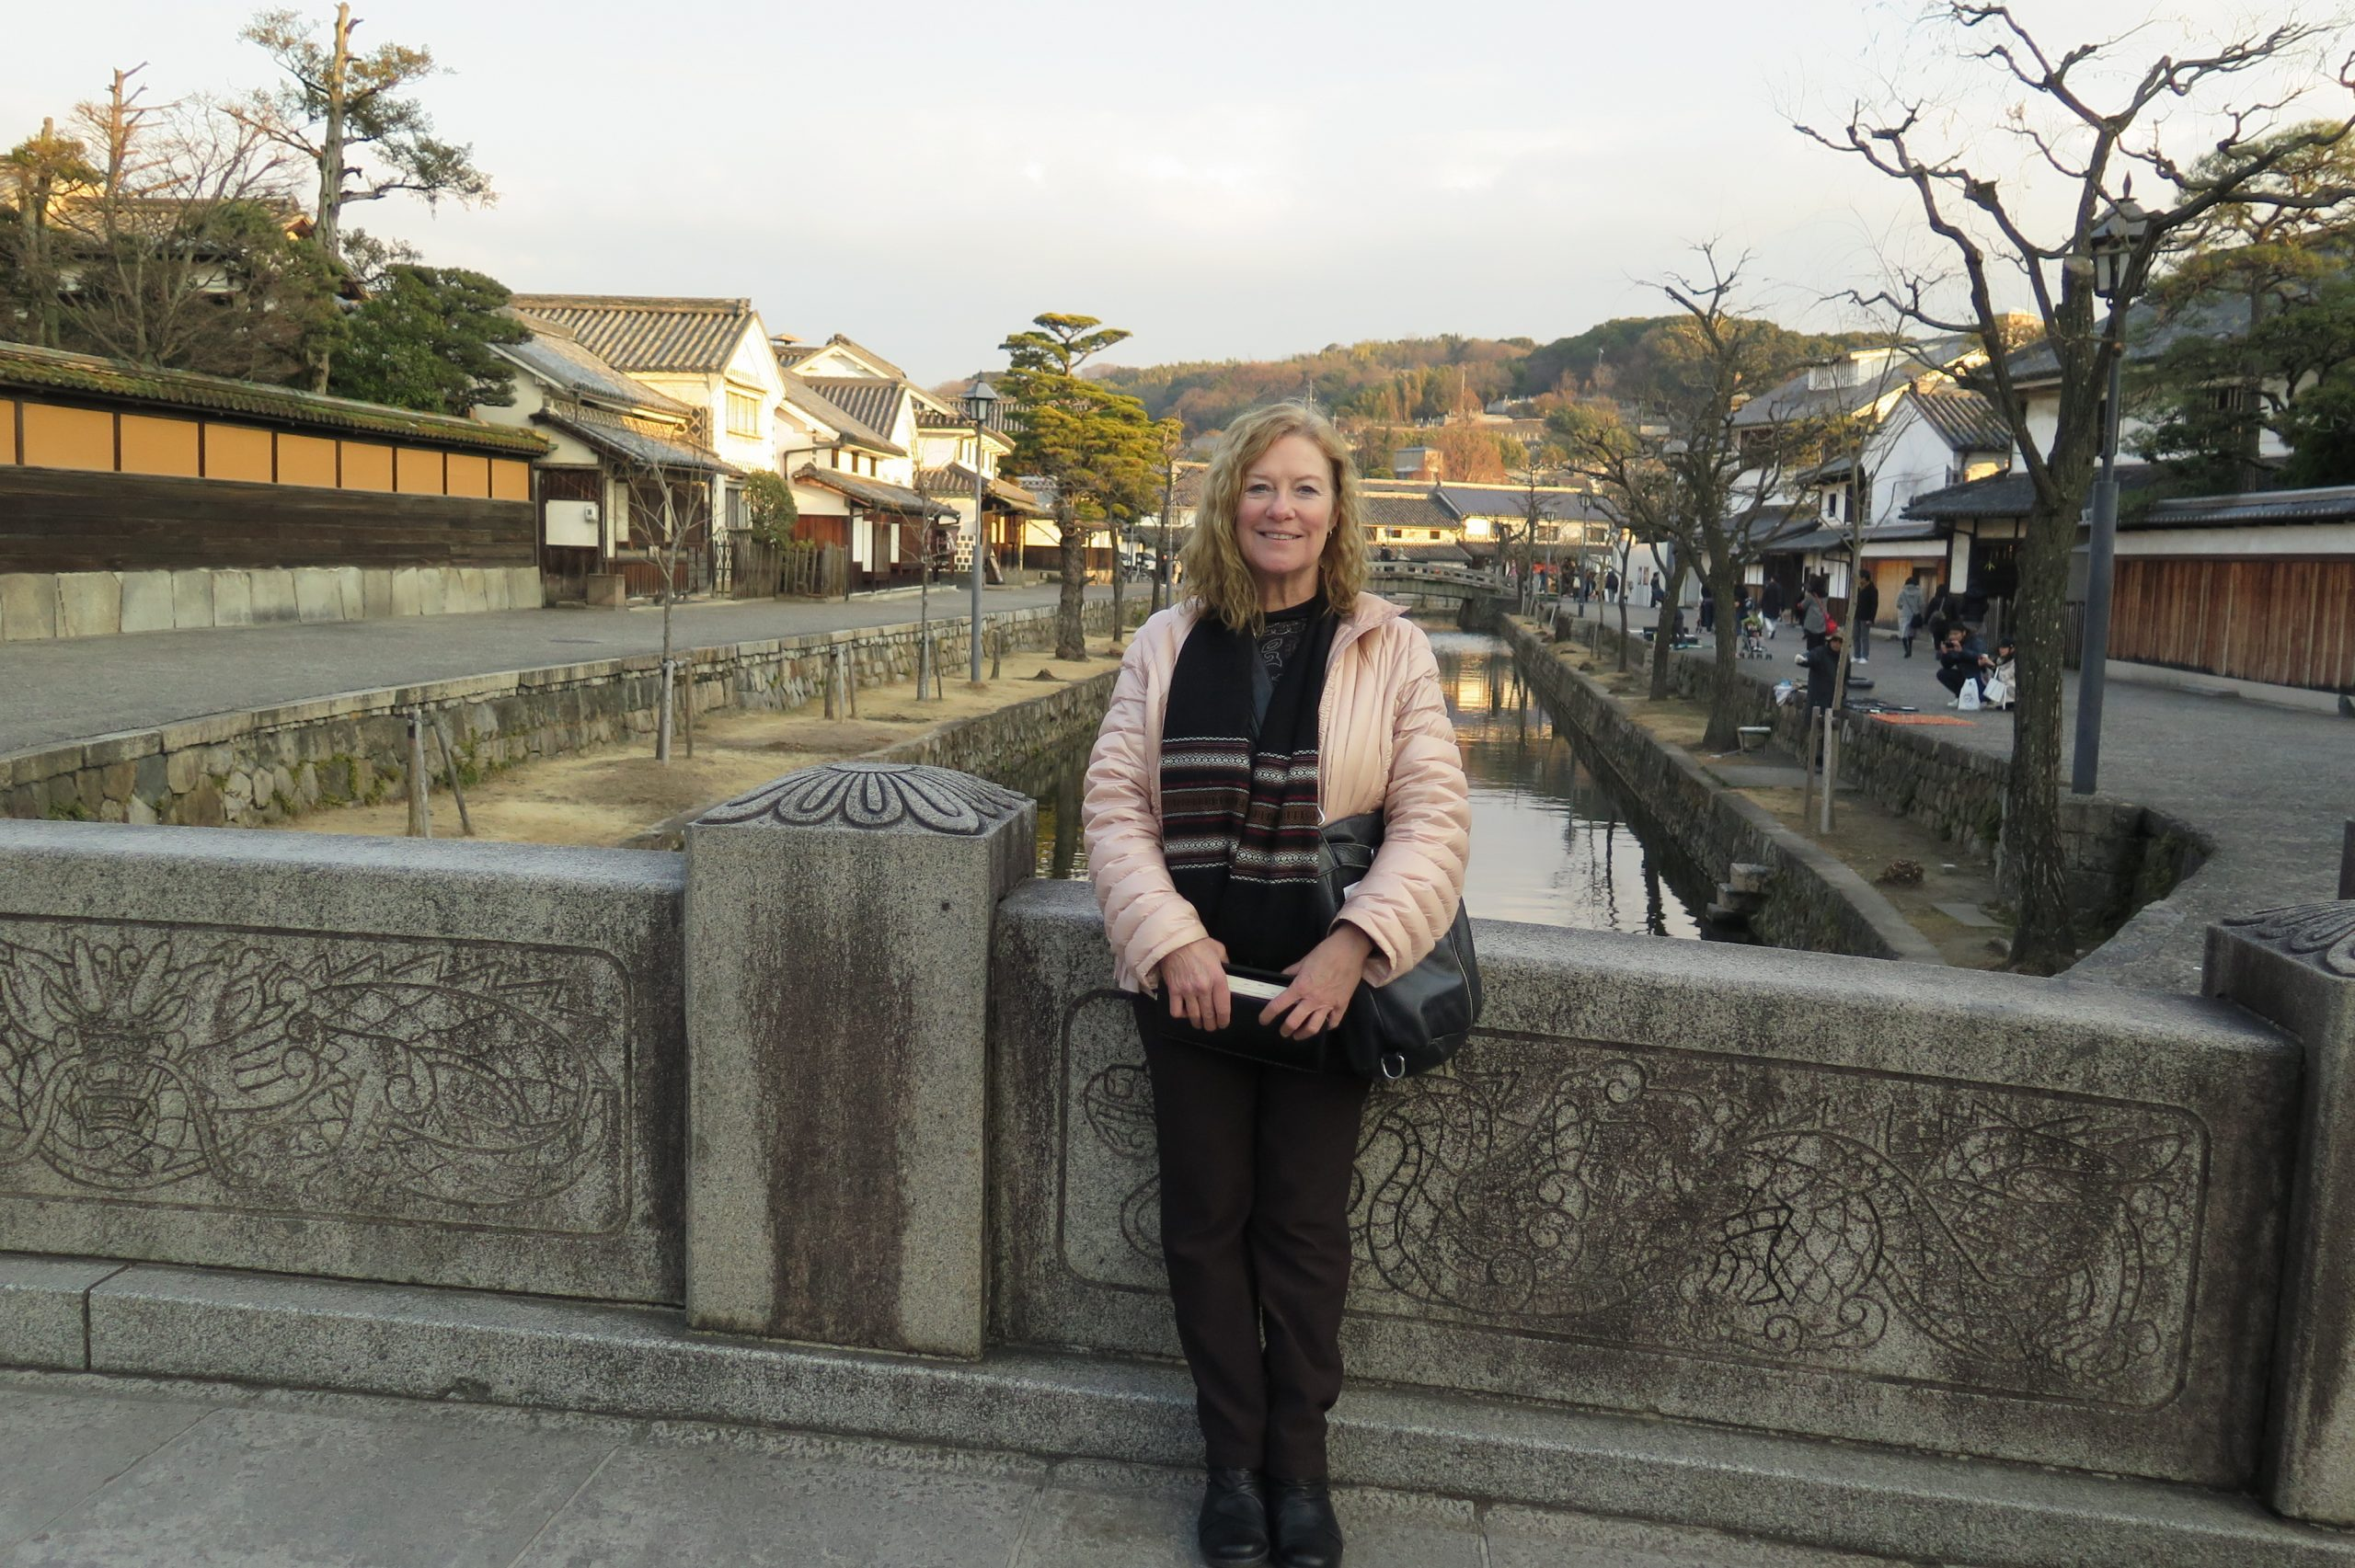 Beth Reibar in Japan, far from her Lawrence, Kansas home